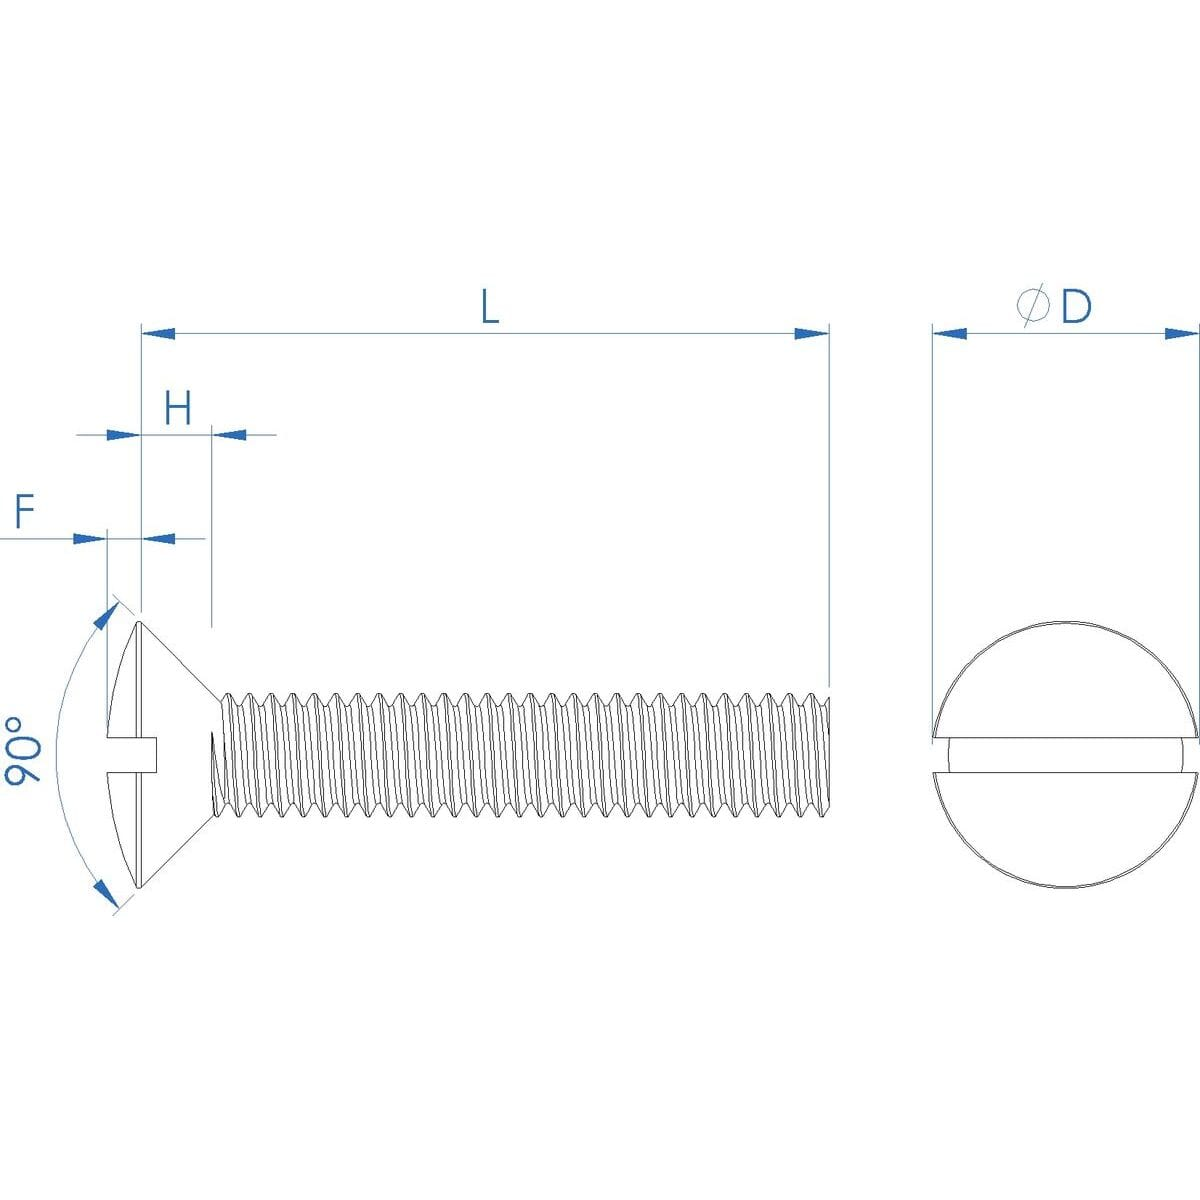 M5 x 8mm Raised Slotted Countersunk Screws (DIN 964) - Marine Stainless Steel (A4) Drawing